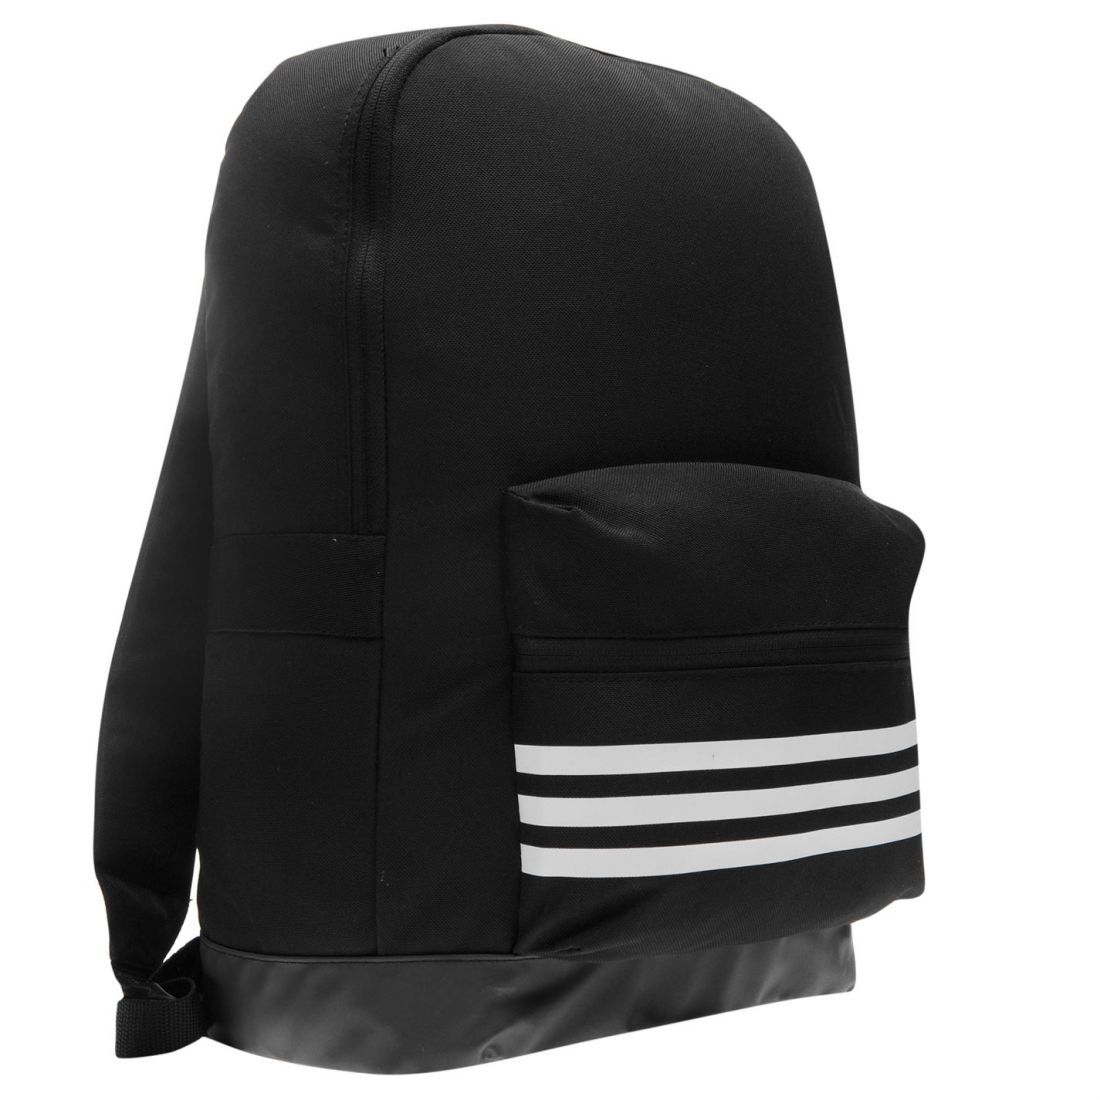 online store c6575 cafe2 adidas 3s Vers Backpack Rucksack School Casual Travel Luggage Accessory